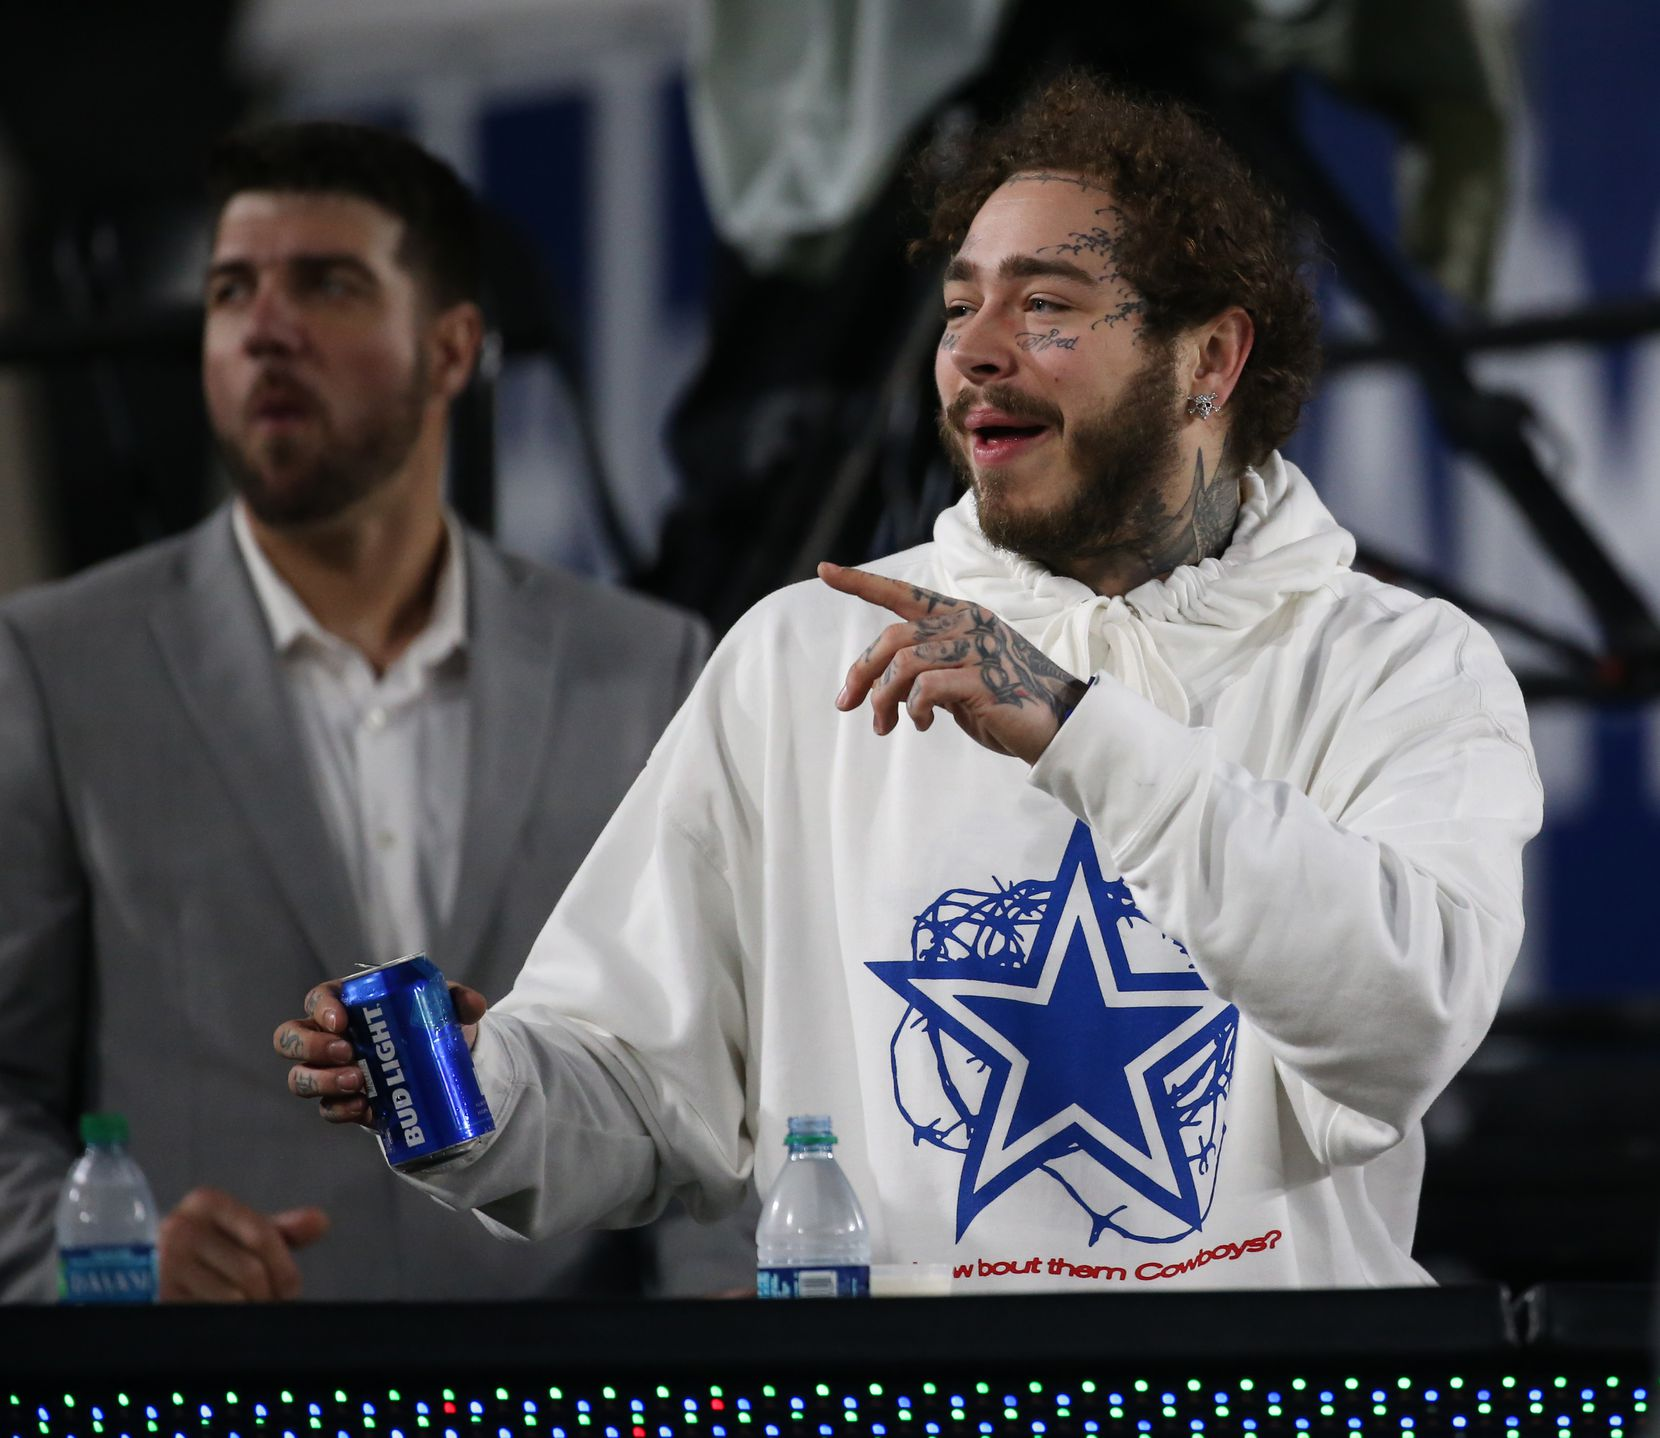 In this Jan. 12, 2019 file photo, Post Malone watches the Dallas Cowboys and Los Angeles Rams in the first quarter of the NFC divisional round playoff game at Los Angeles Memorial Coliseum in Los Angeles, Calif.